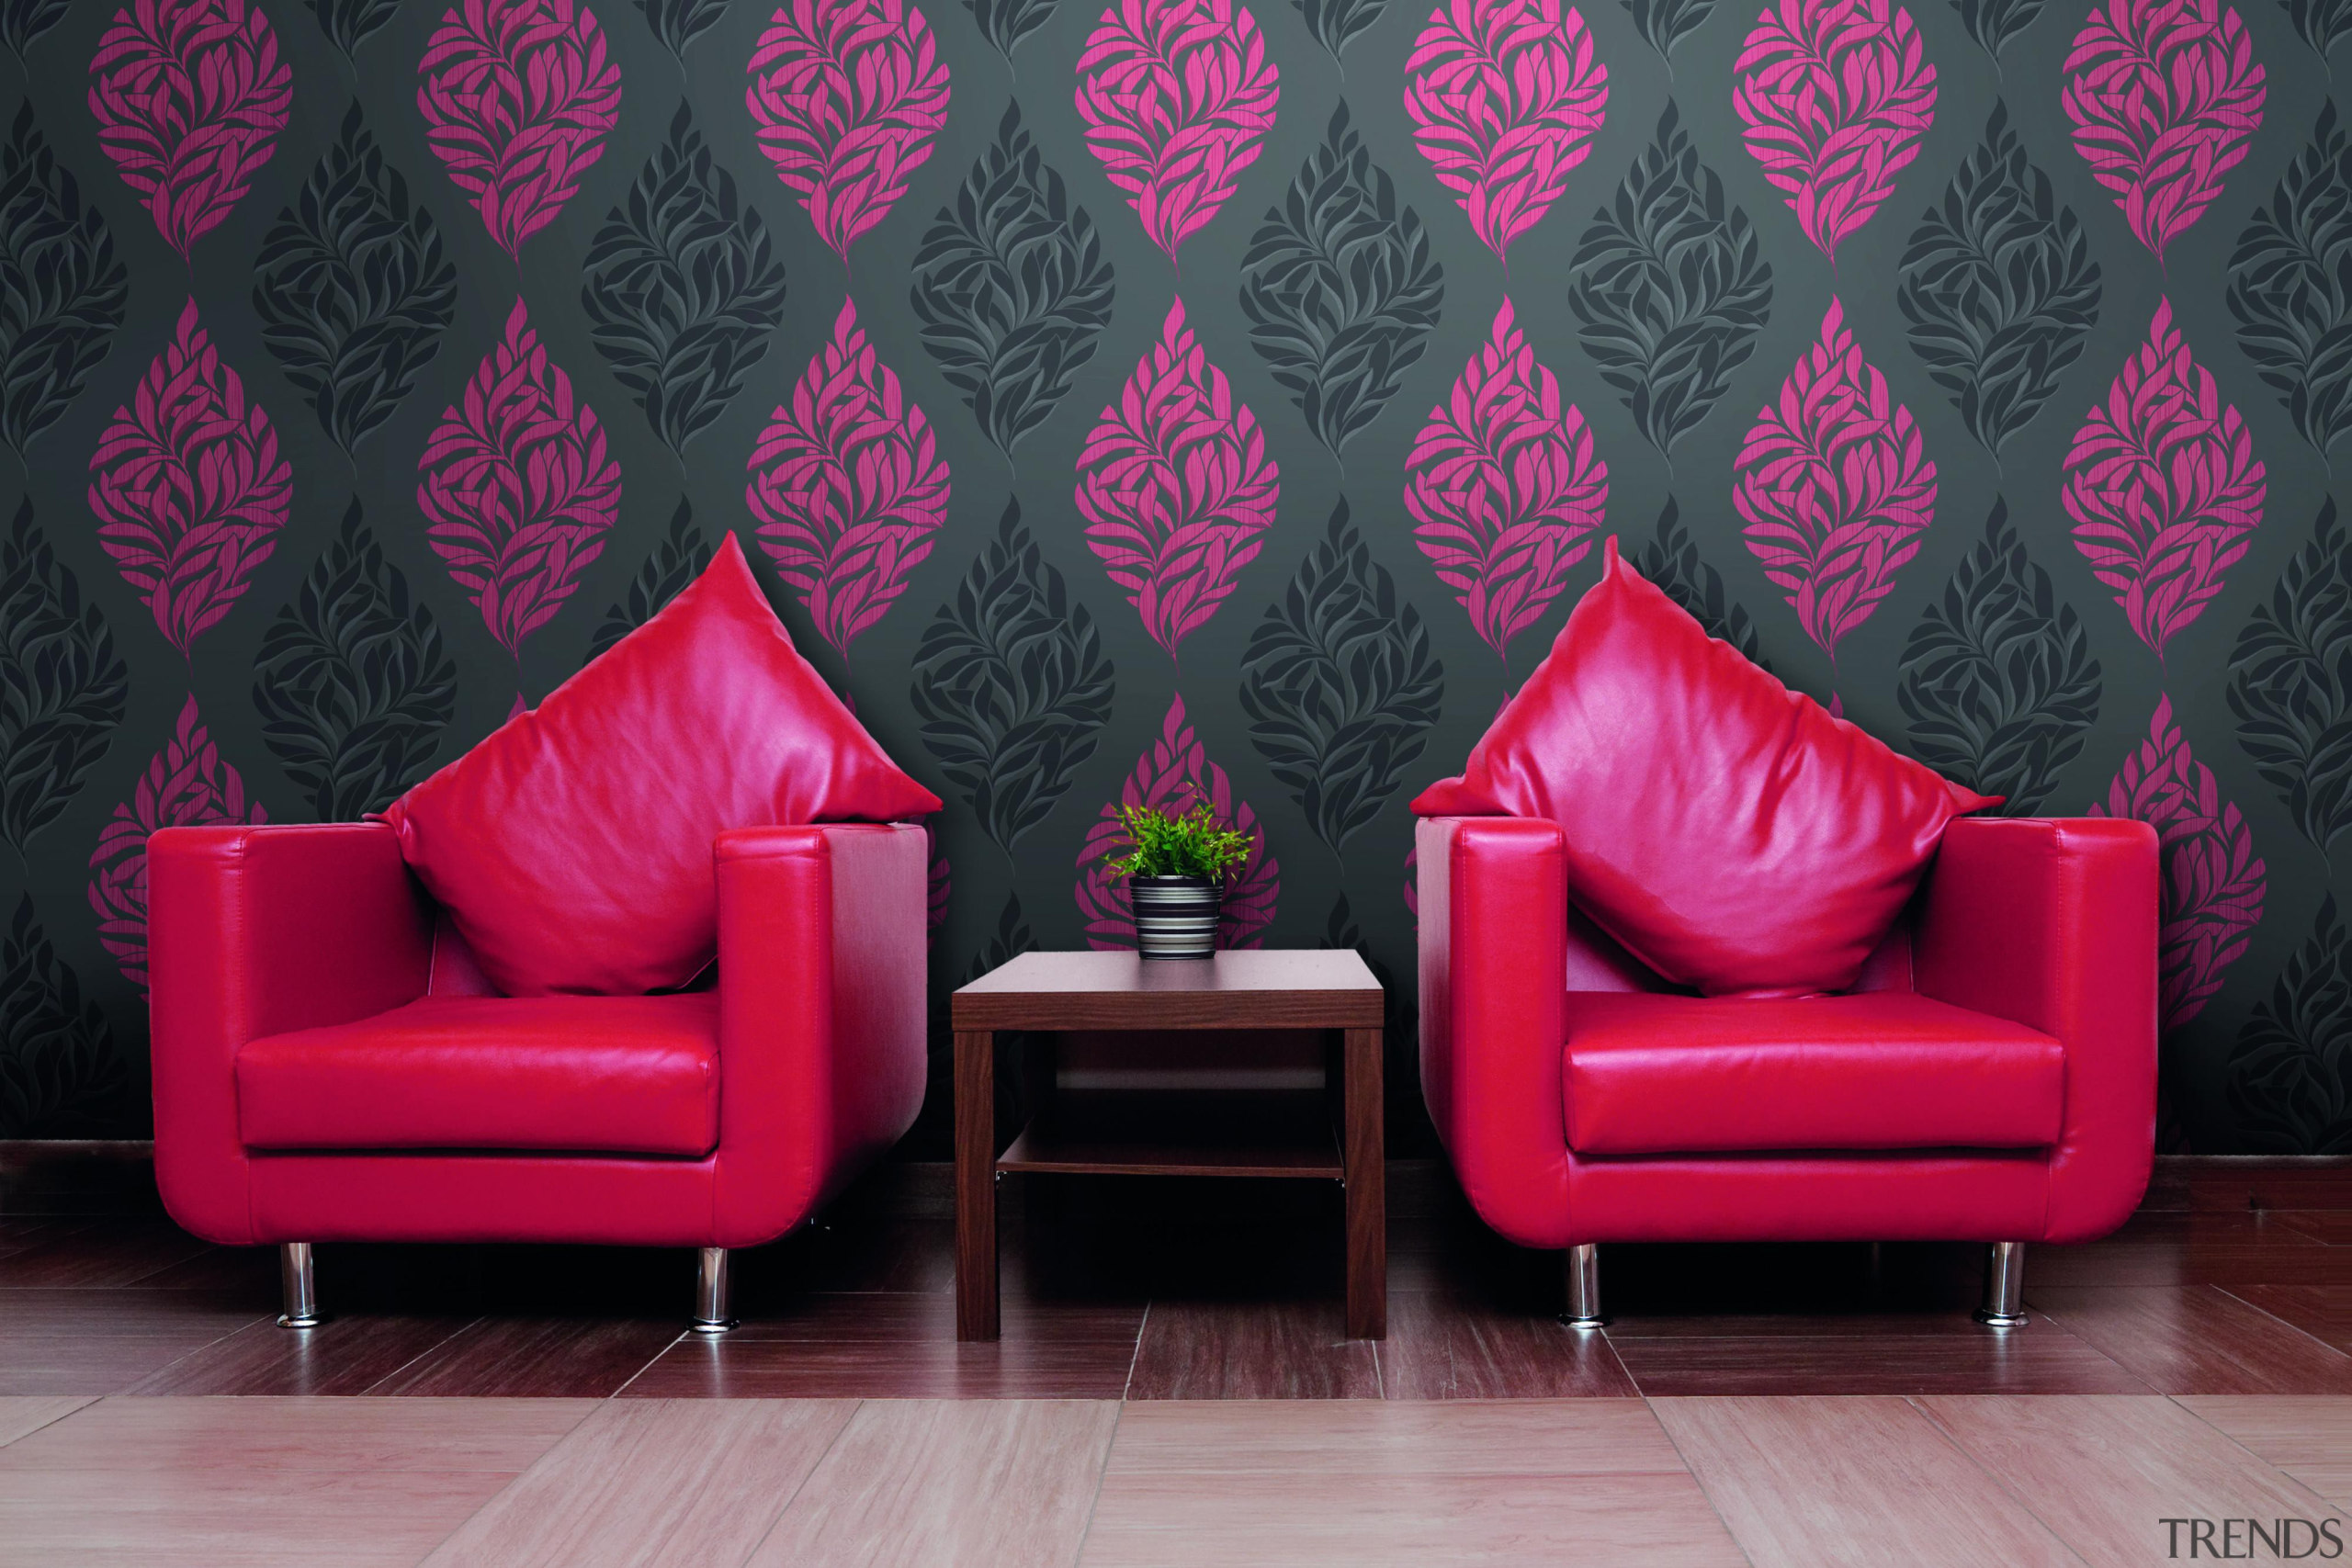 Modern Style Range - chair   couch   chair, couch, interior design, living room, magenta, pink, purple, wall, wallpaper, black, red